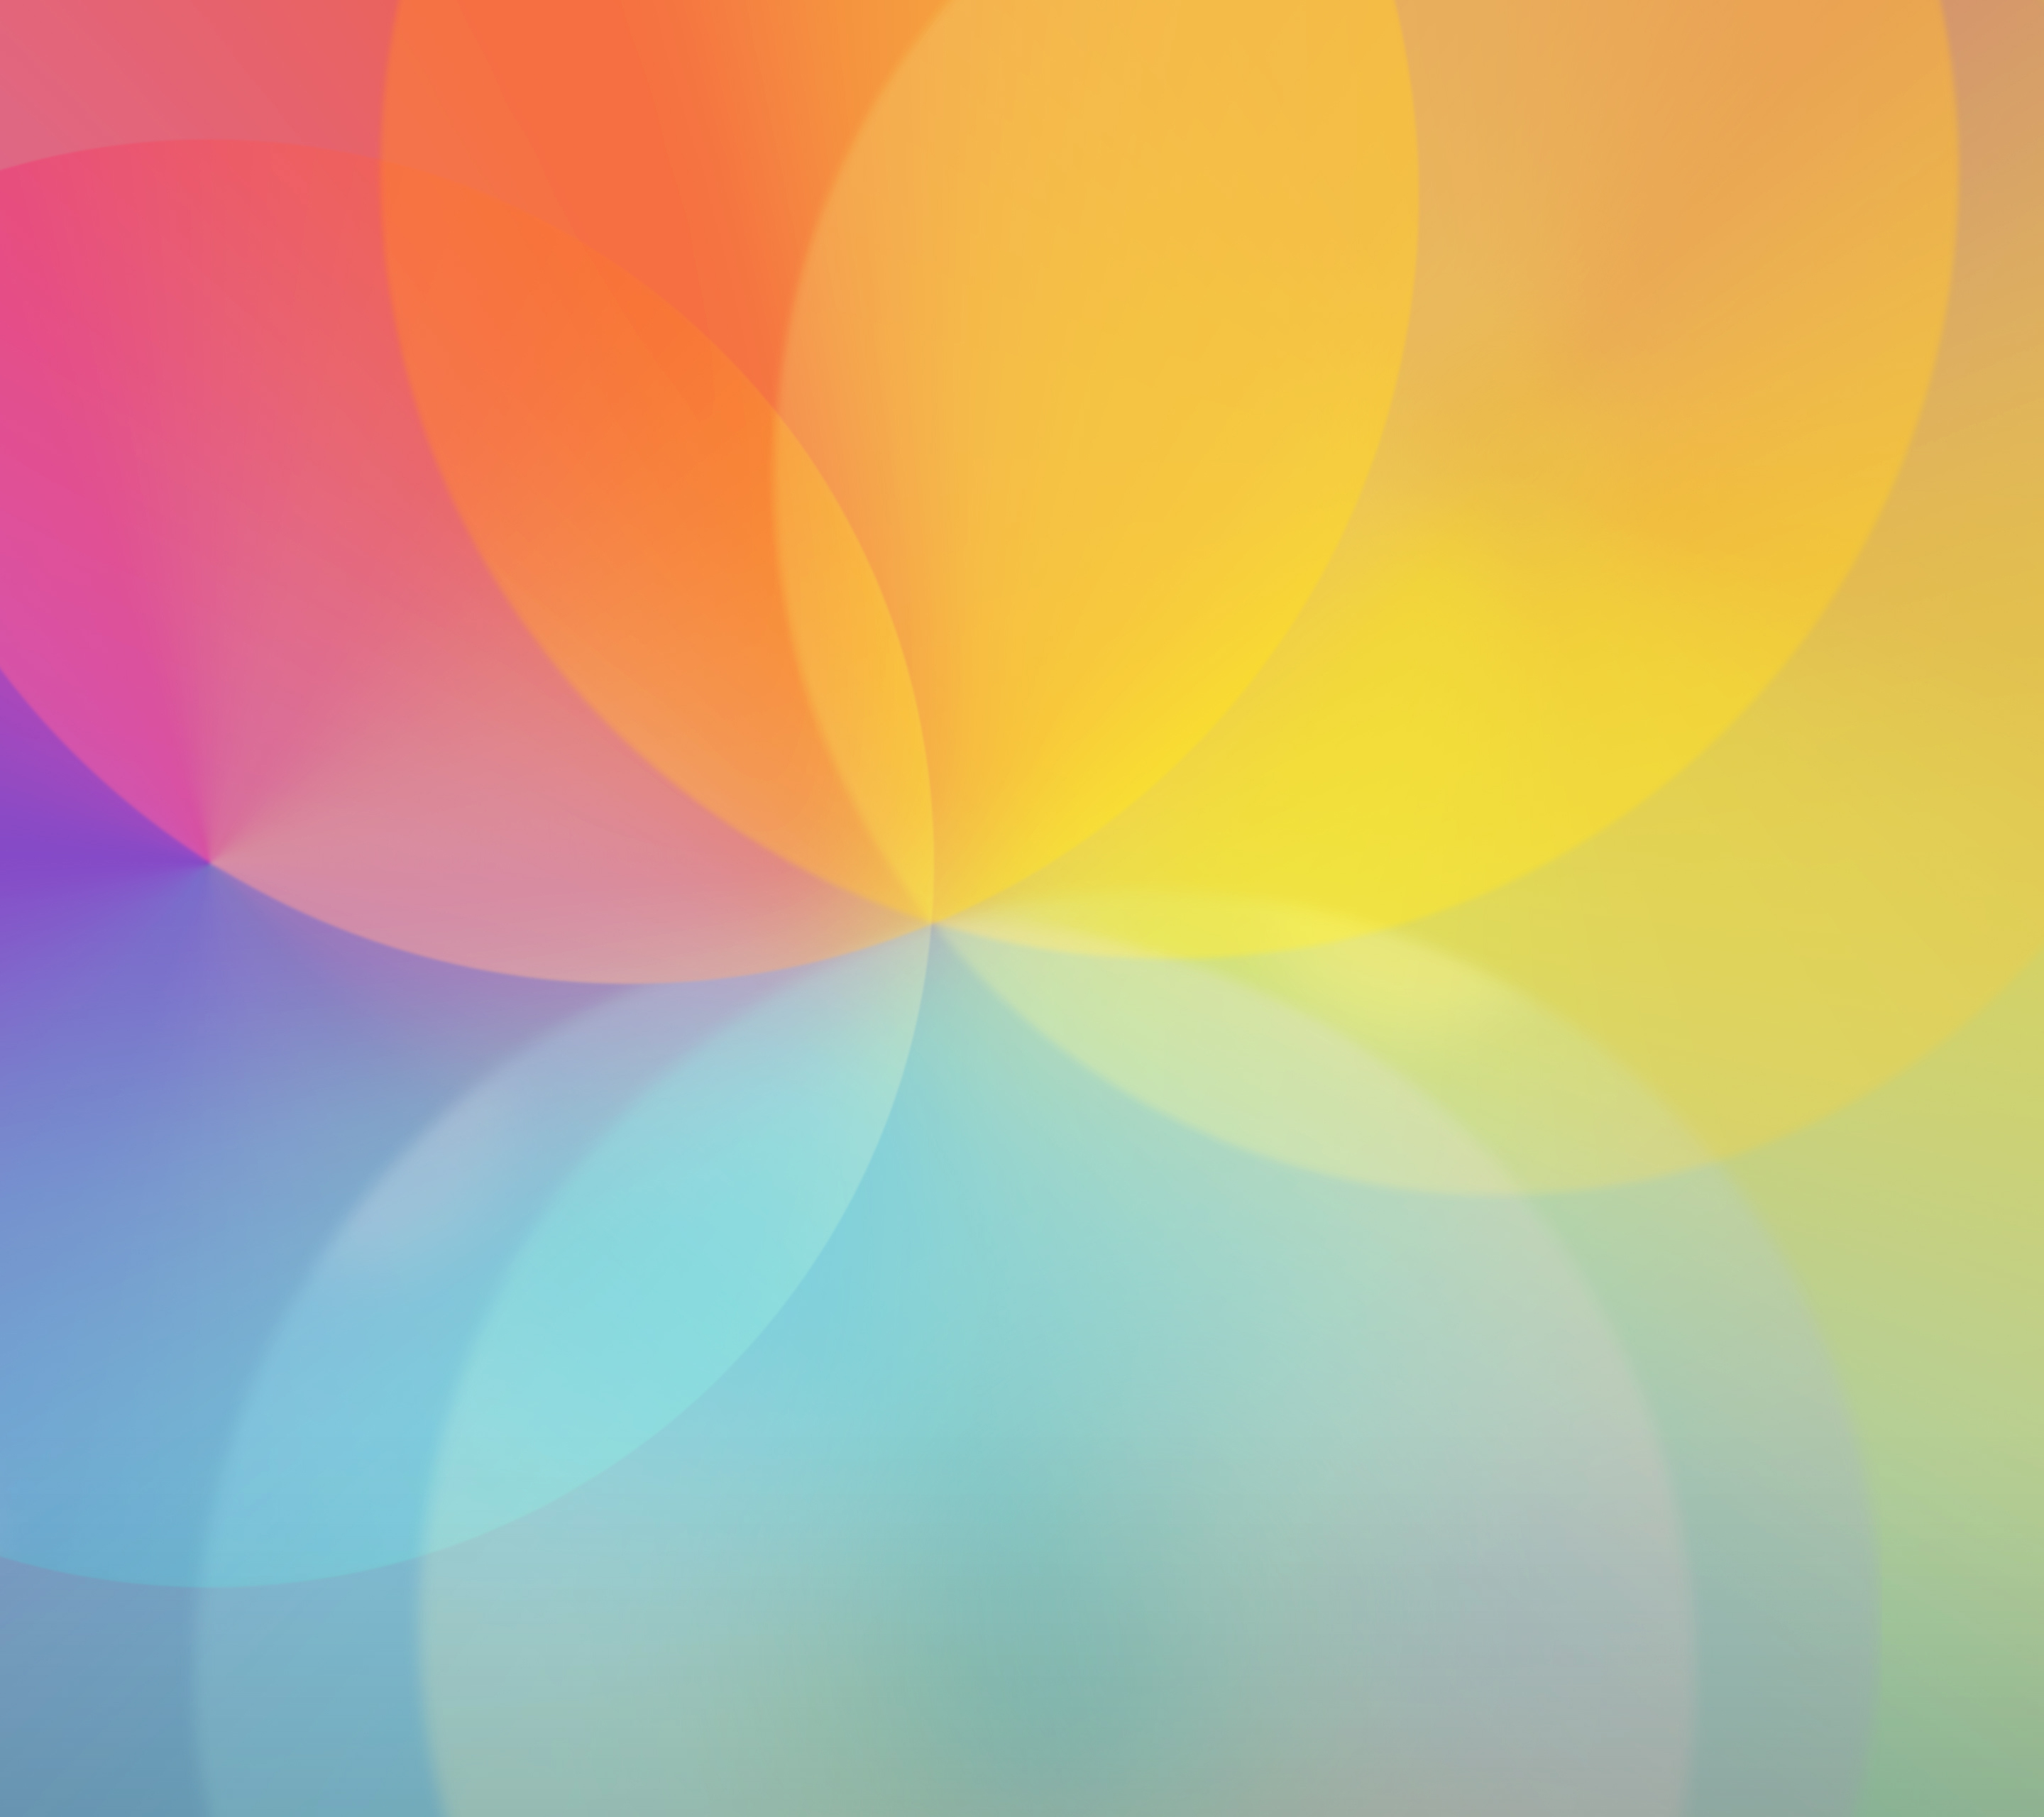 download lg g3 wallpapers for your phone